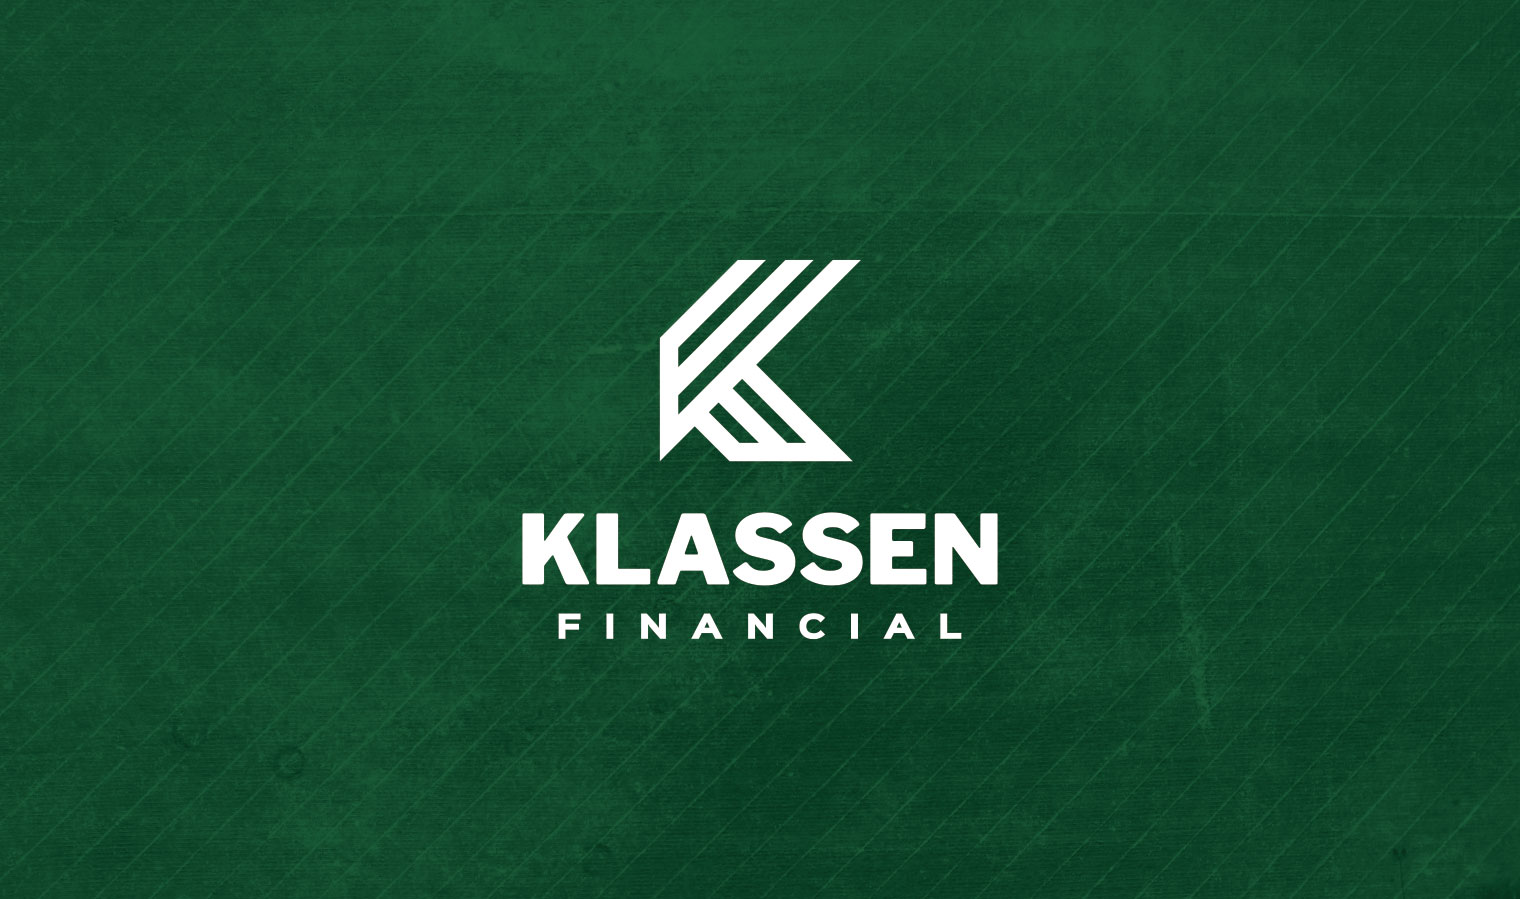 Klassen Financial Graphic